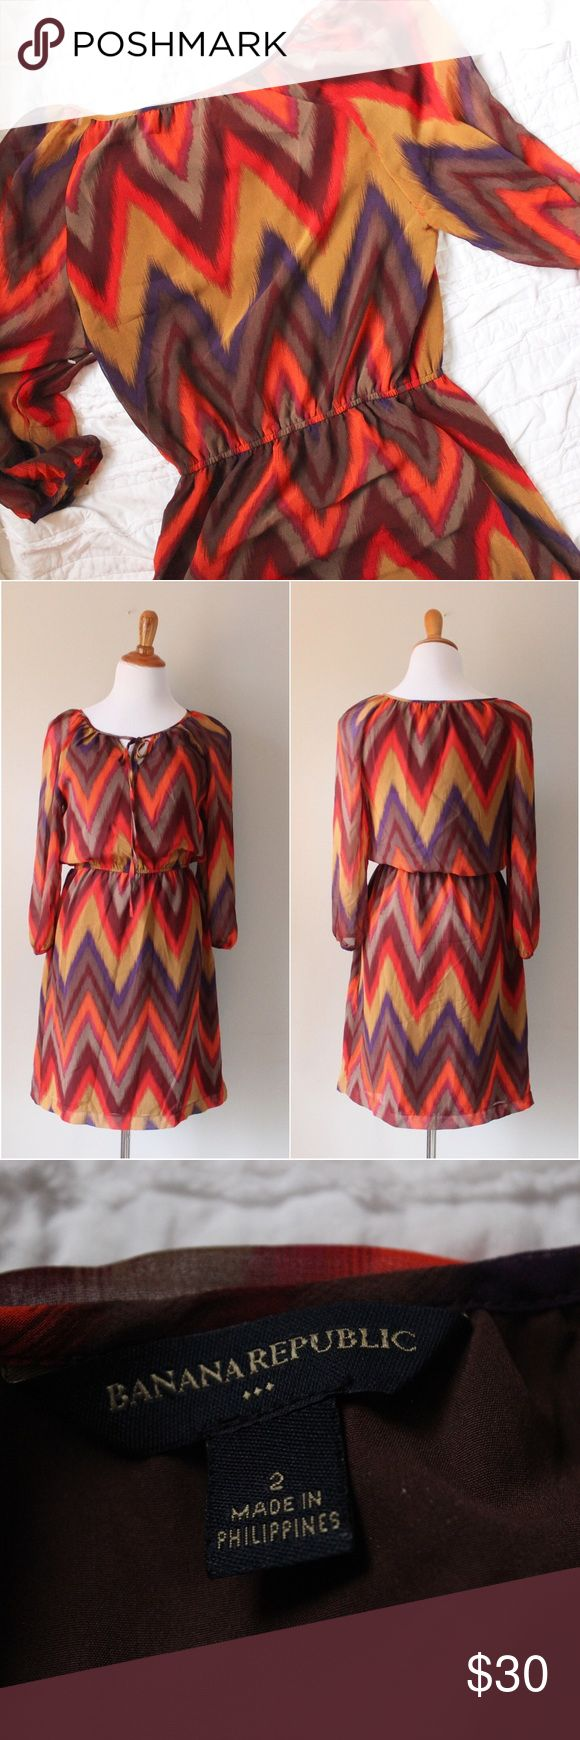 Banana Republic Chevron Print Long Sleeve Dress Long sleeve dress with a chevron print throughout. Pull over style, tie front detail and Elastic Waist. Shown on a size 4/6 mannequin. In gently used condition. Banana Republic Dresses Long Sleeve